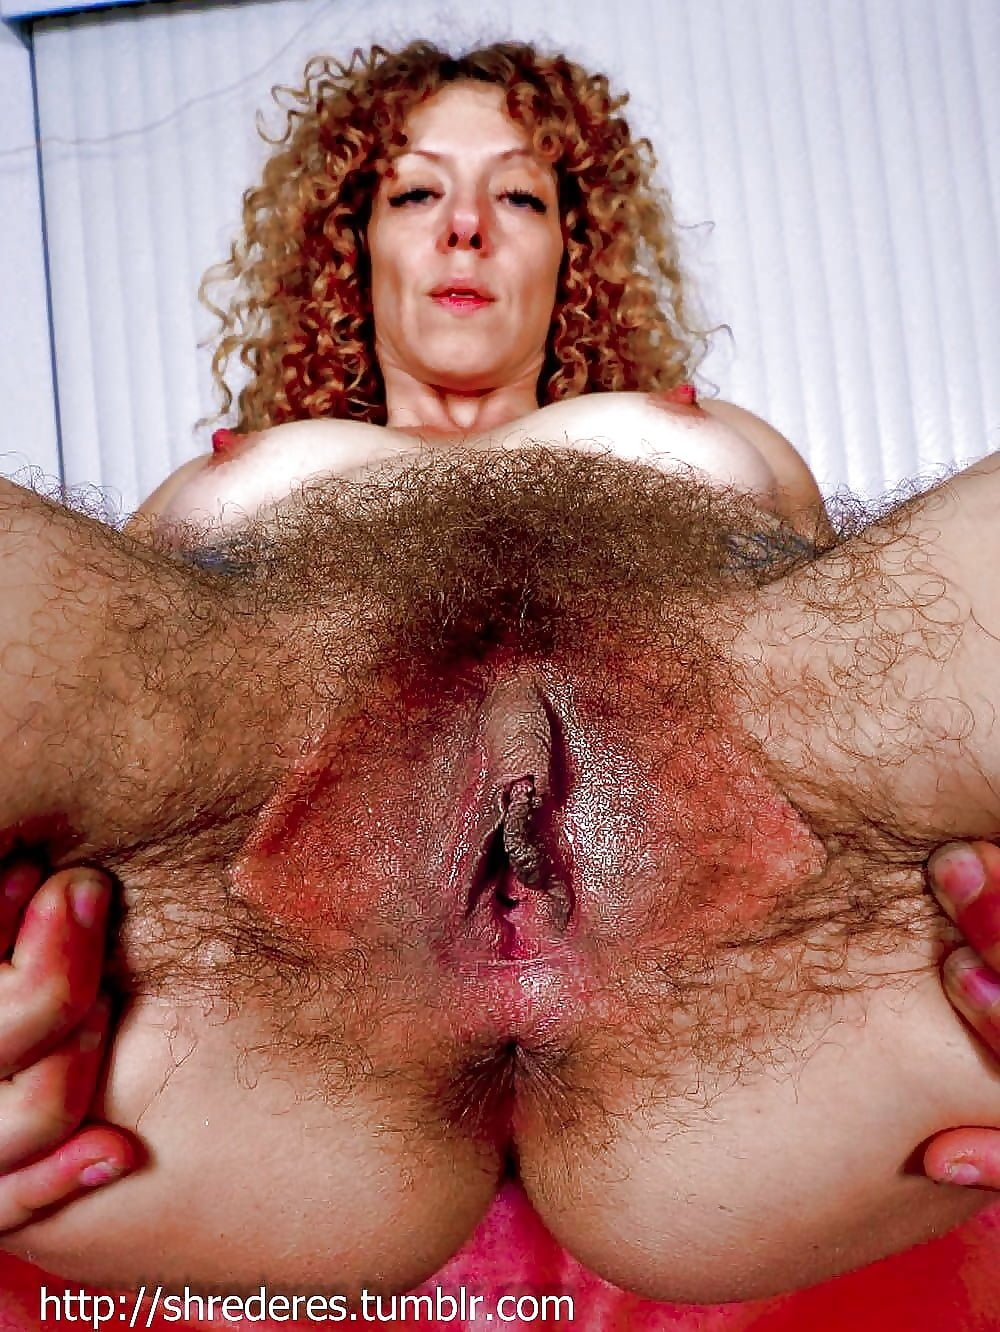 Nasty hairy cunt of slavena is filled with lubricant in a dirty old pussy exam porn clip